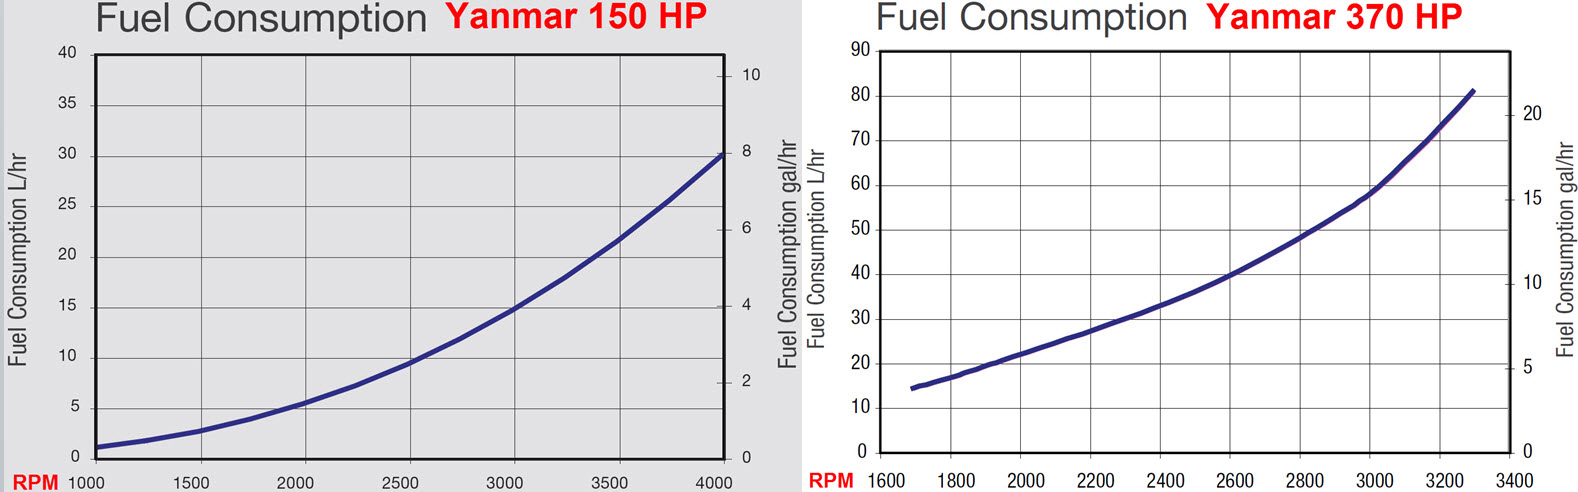 Click image for larger version  Name:Yanmar 150hp to 370hp comparison.jpg Views:274 Size:130.0 KB ID:90148